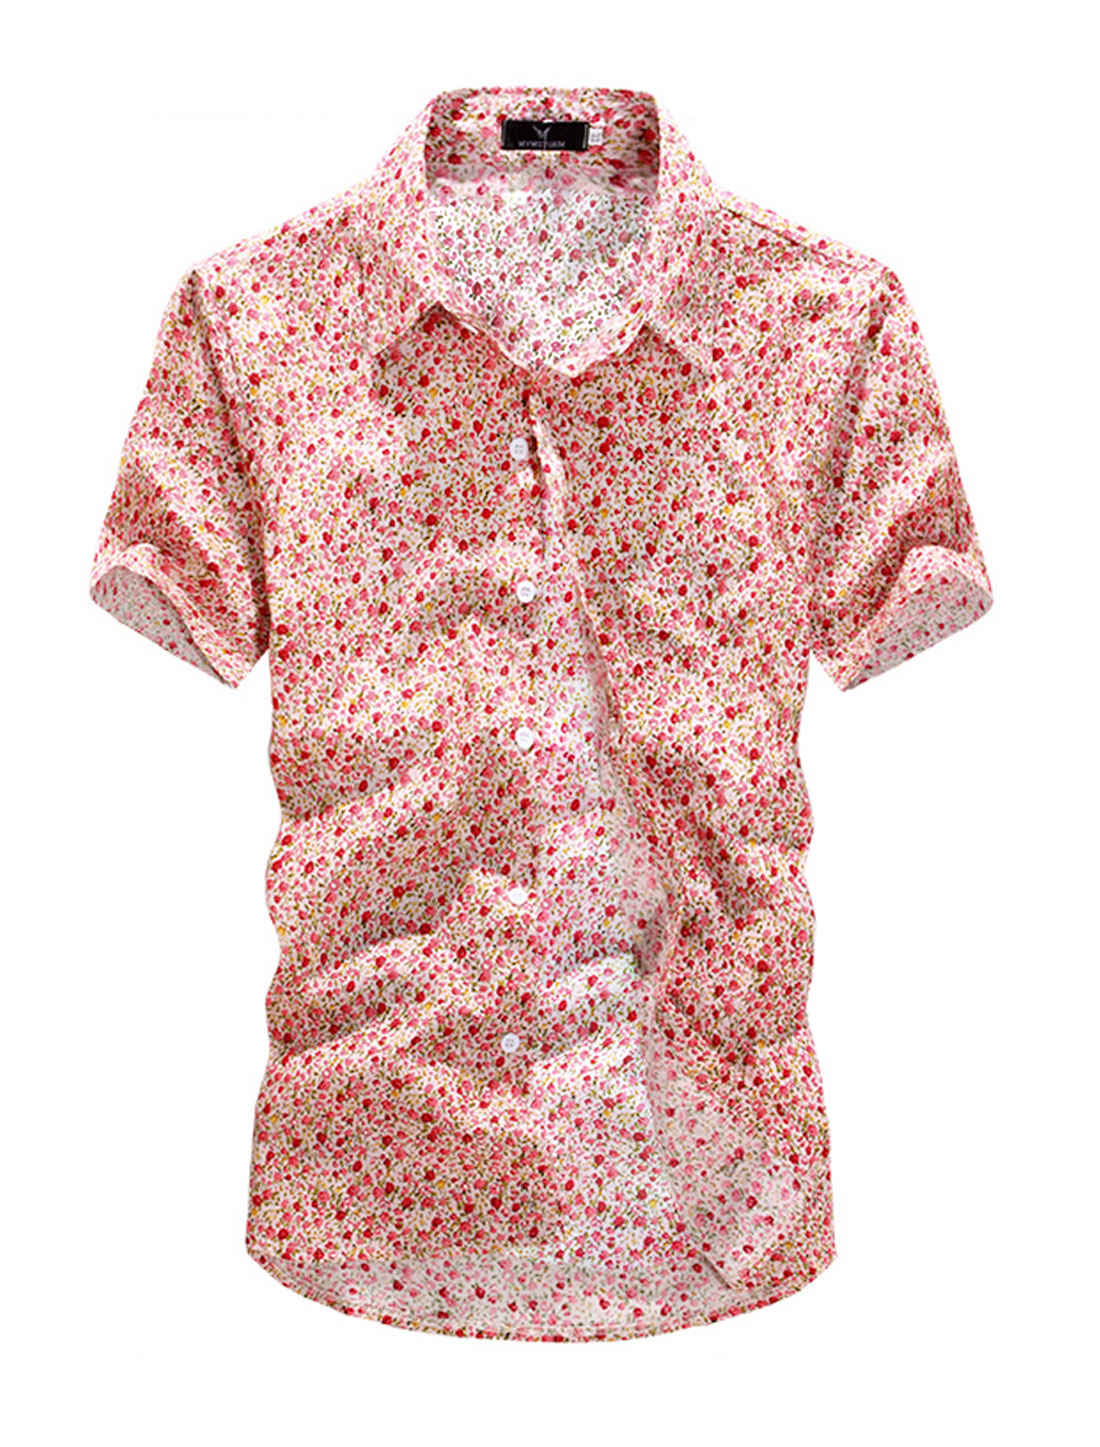 Short Sleeve Floral Prints Button Down Shirt for Men Deep Pink M